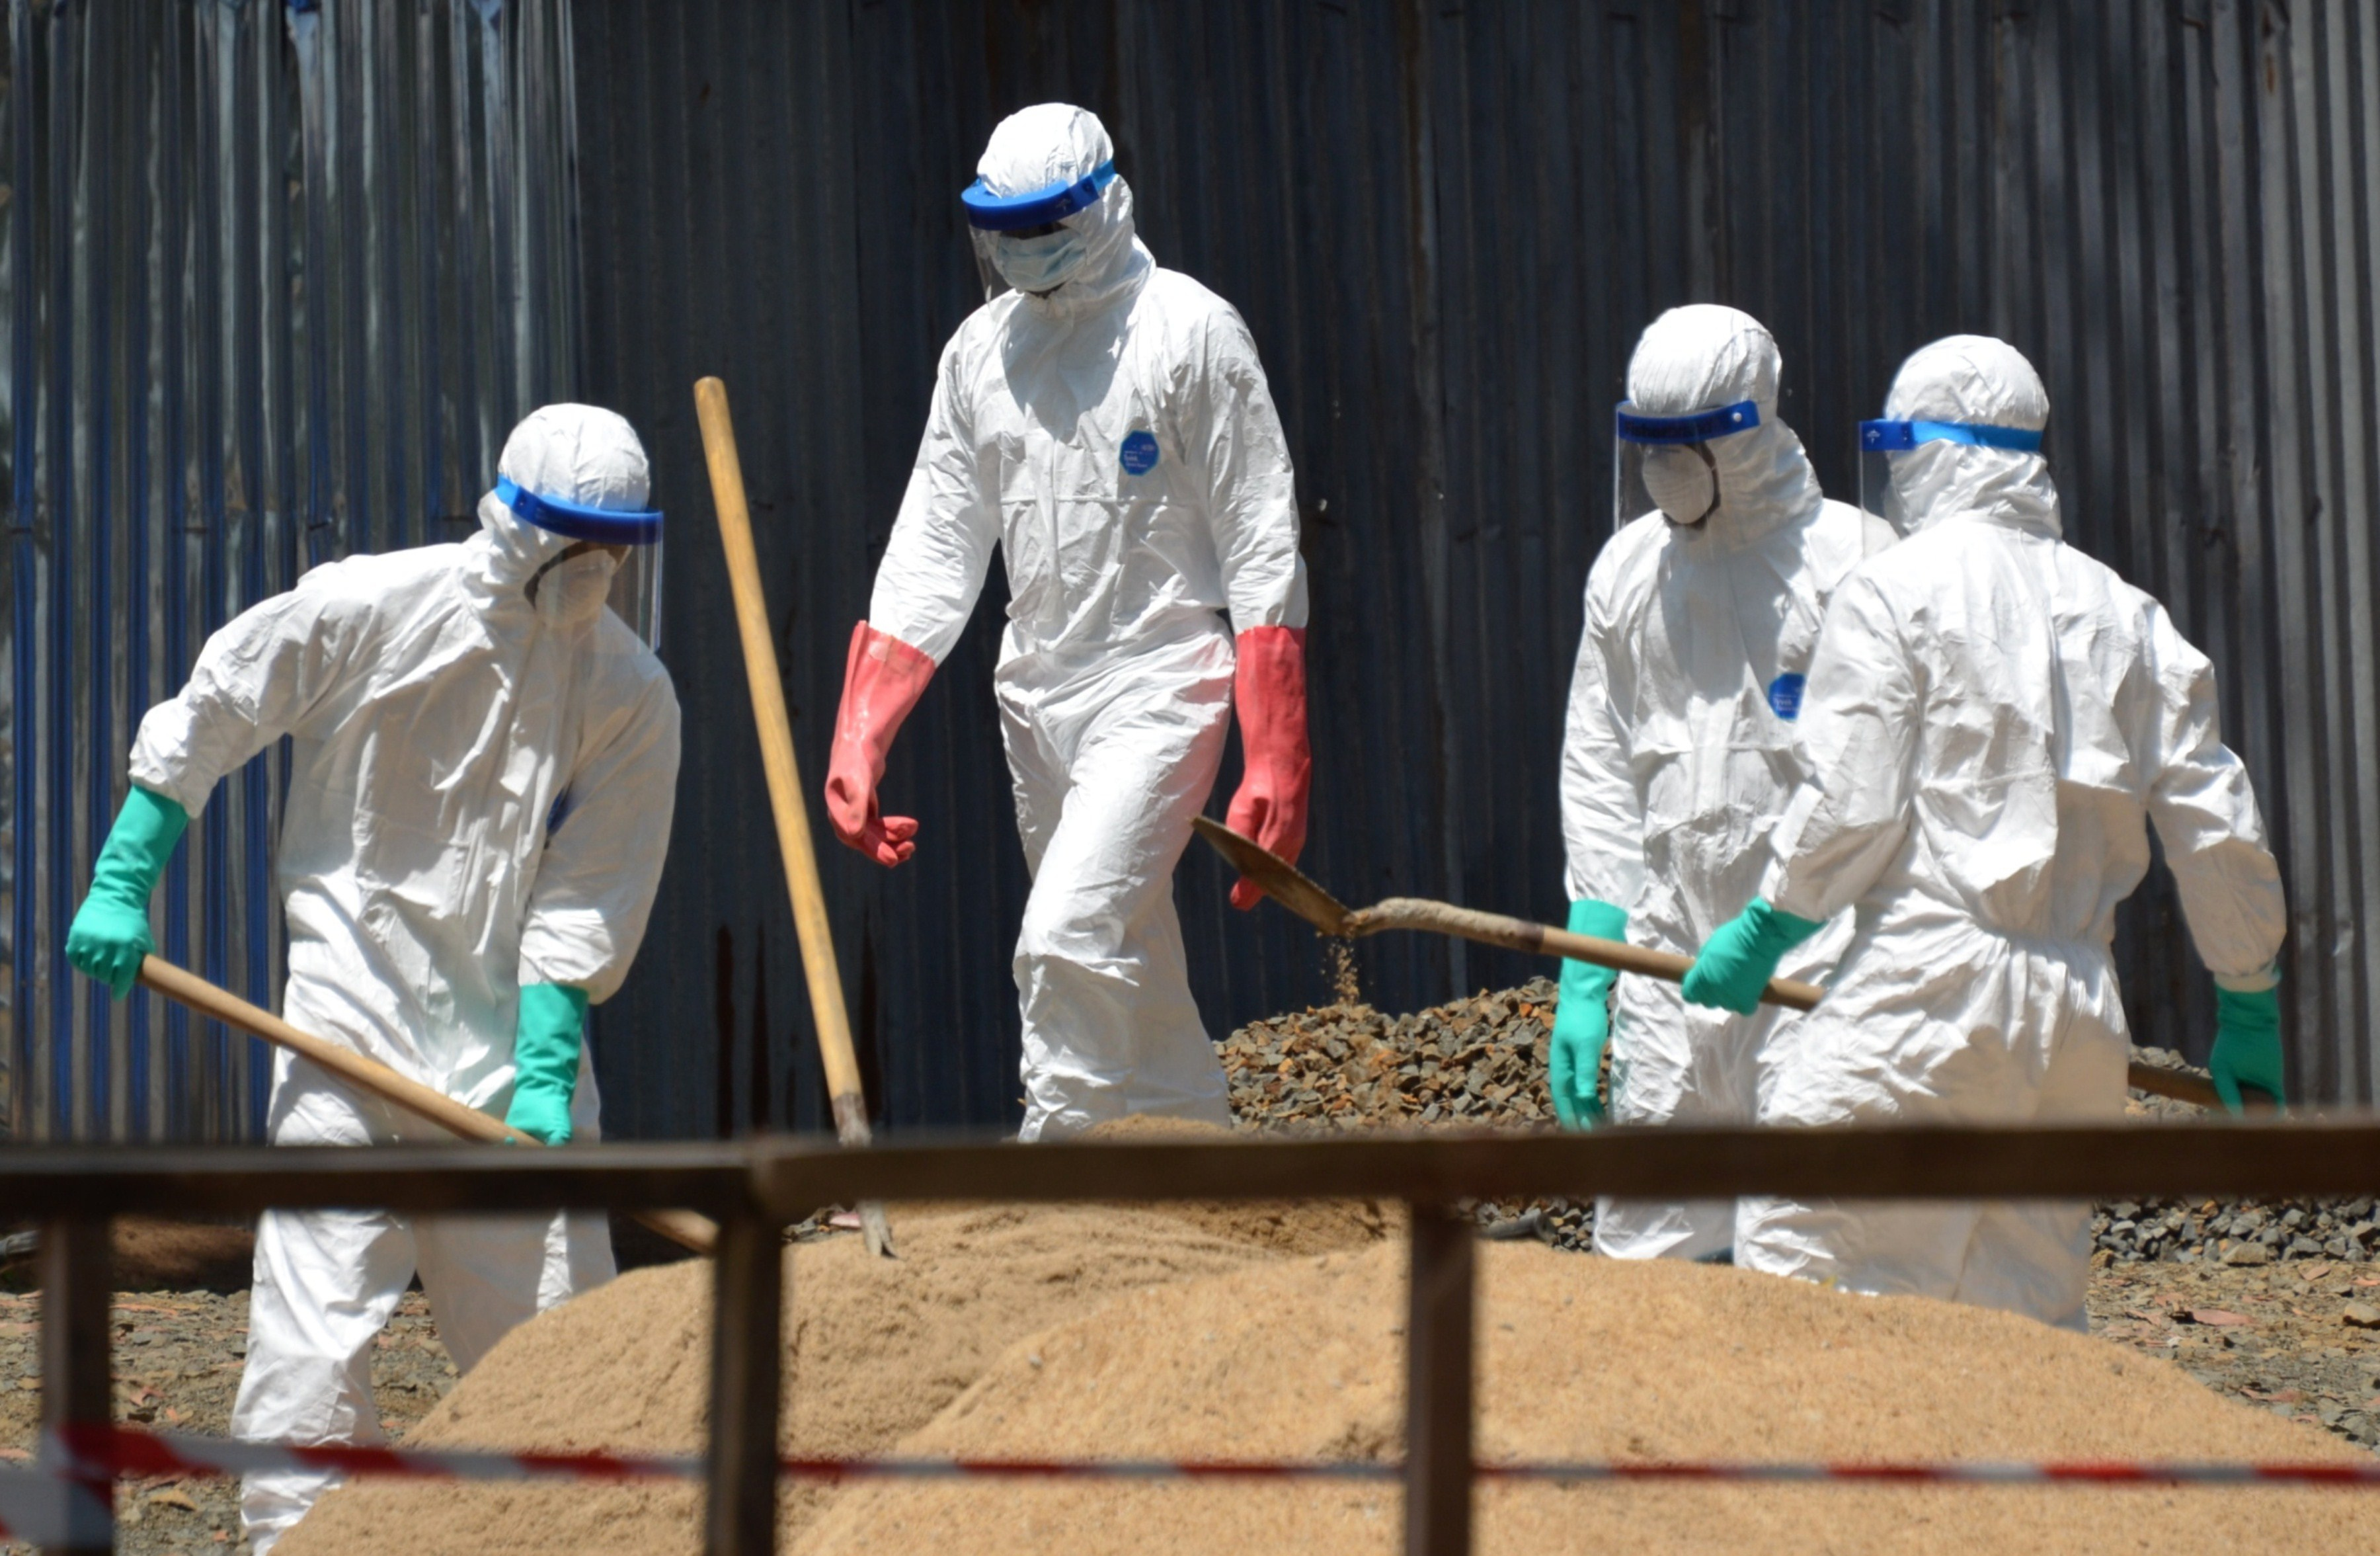 Health workers from the Liberian Red Cross wear protective gear as they shovel sand which will be used to absorb fluids emitted from the bodies of Ebola victims in front of the ELWA 2 Ebola management center in Monrovia on October 23, 2014.